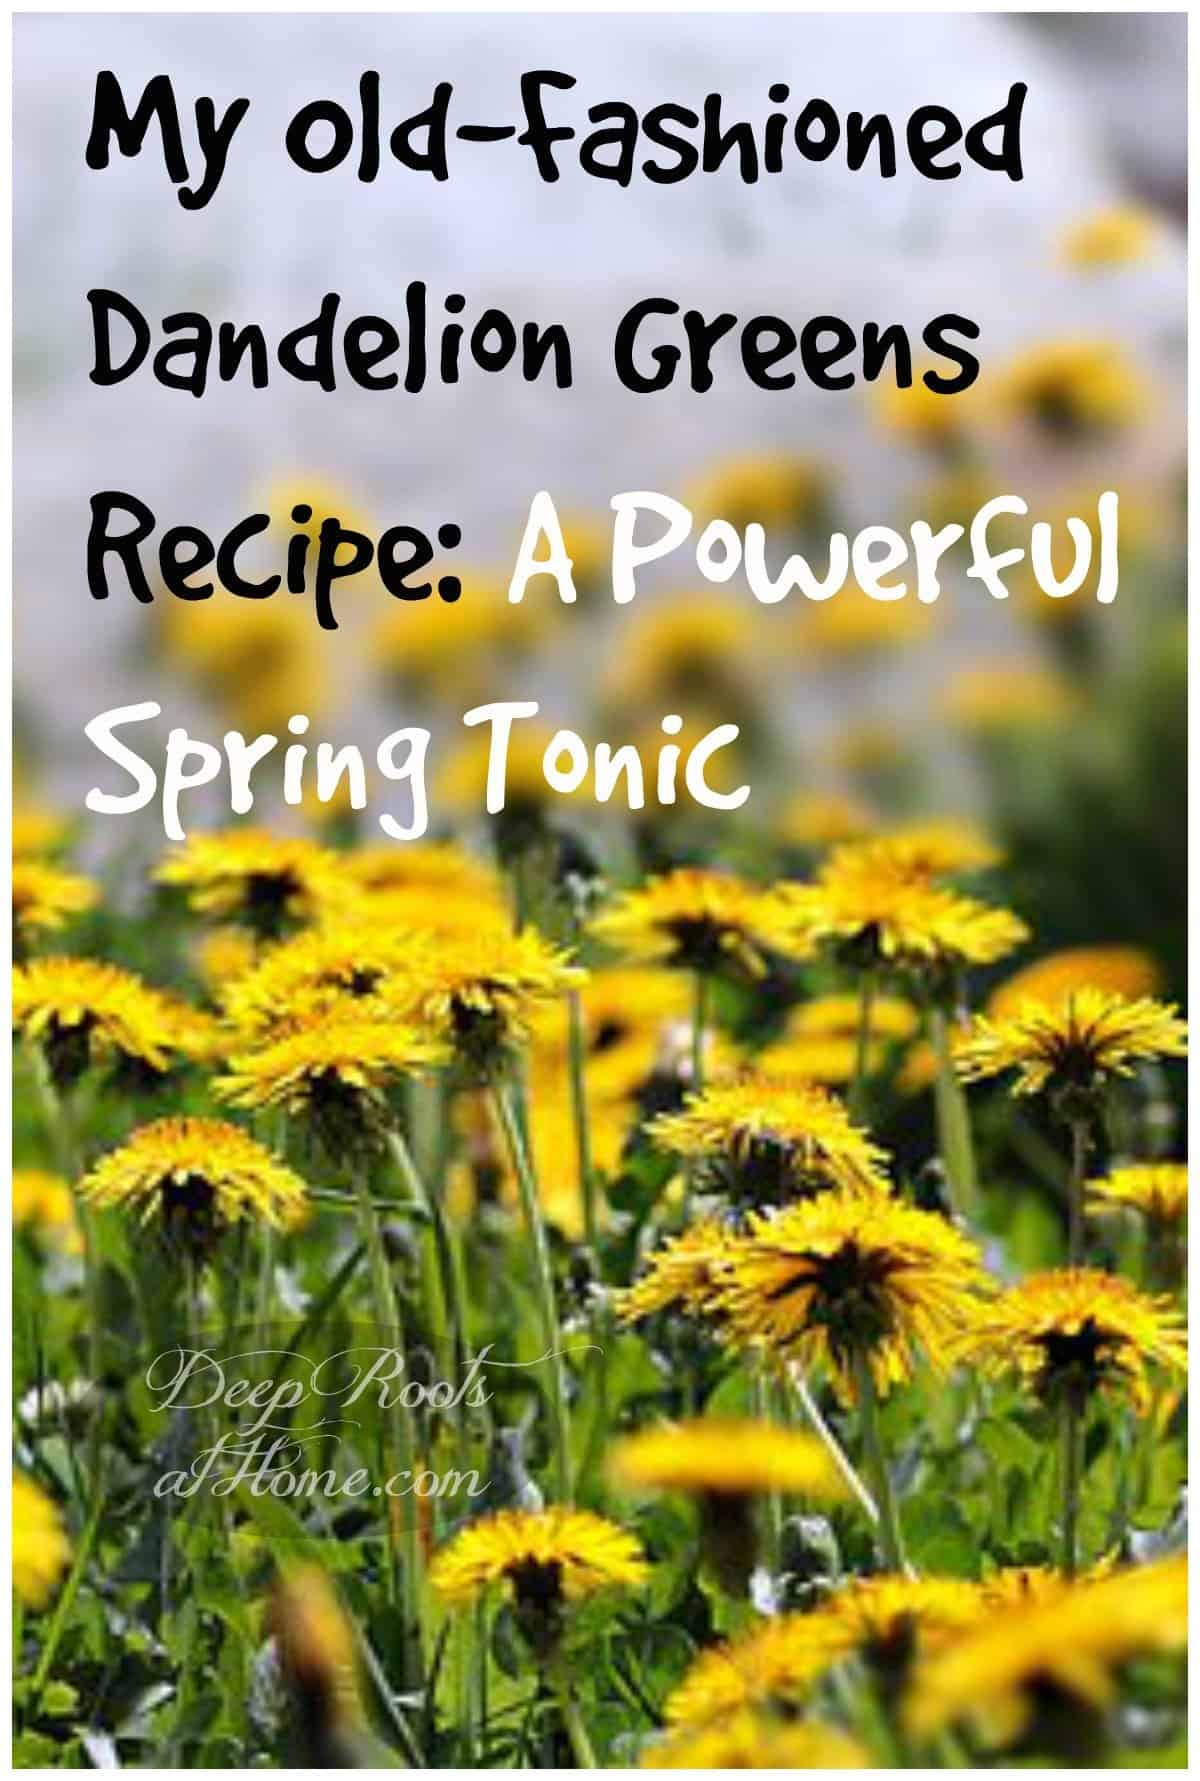 My Old-Fashioned Dandelion Greens Recipe: A Powerful Spring Tonic. spring dandelions and health benefits of the herb